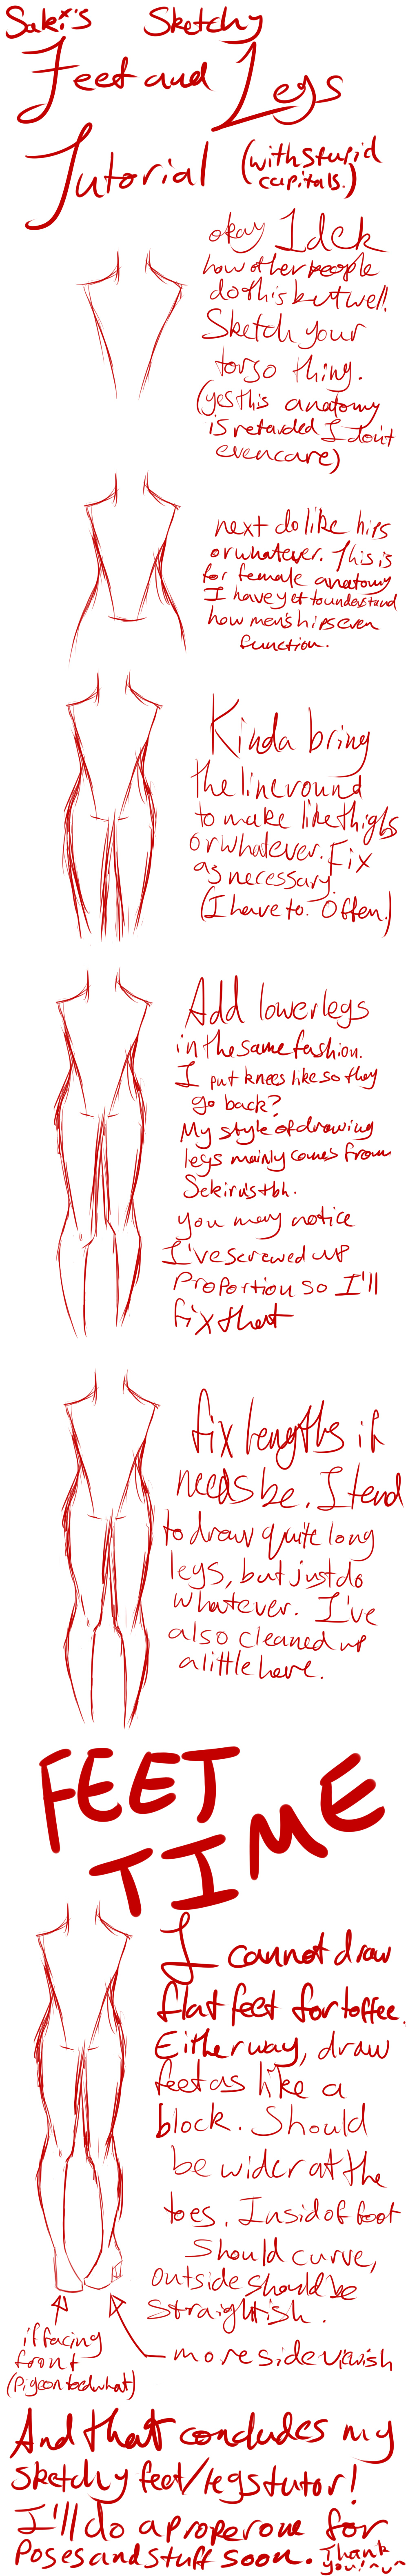 A very sketchy foot and leg tutorial by Sakkeru